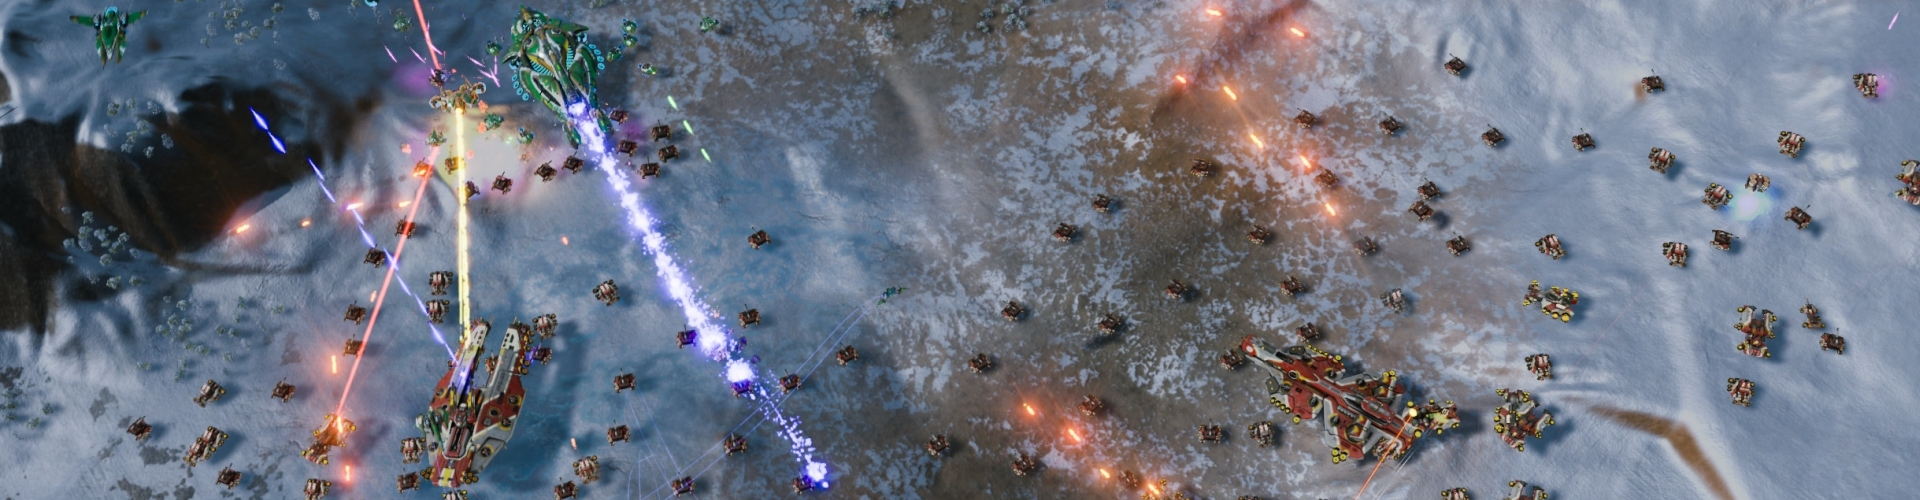 Ashes of the Singularity Beta - Benchmark 2.0 mit DirectX 12, Asychronous Compute und pikanten Ergebnissen [Update]